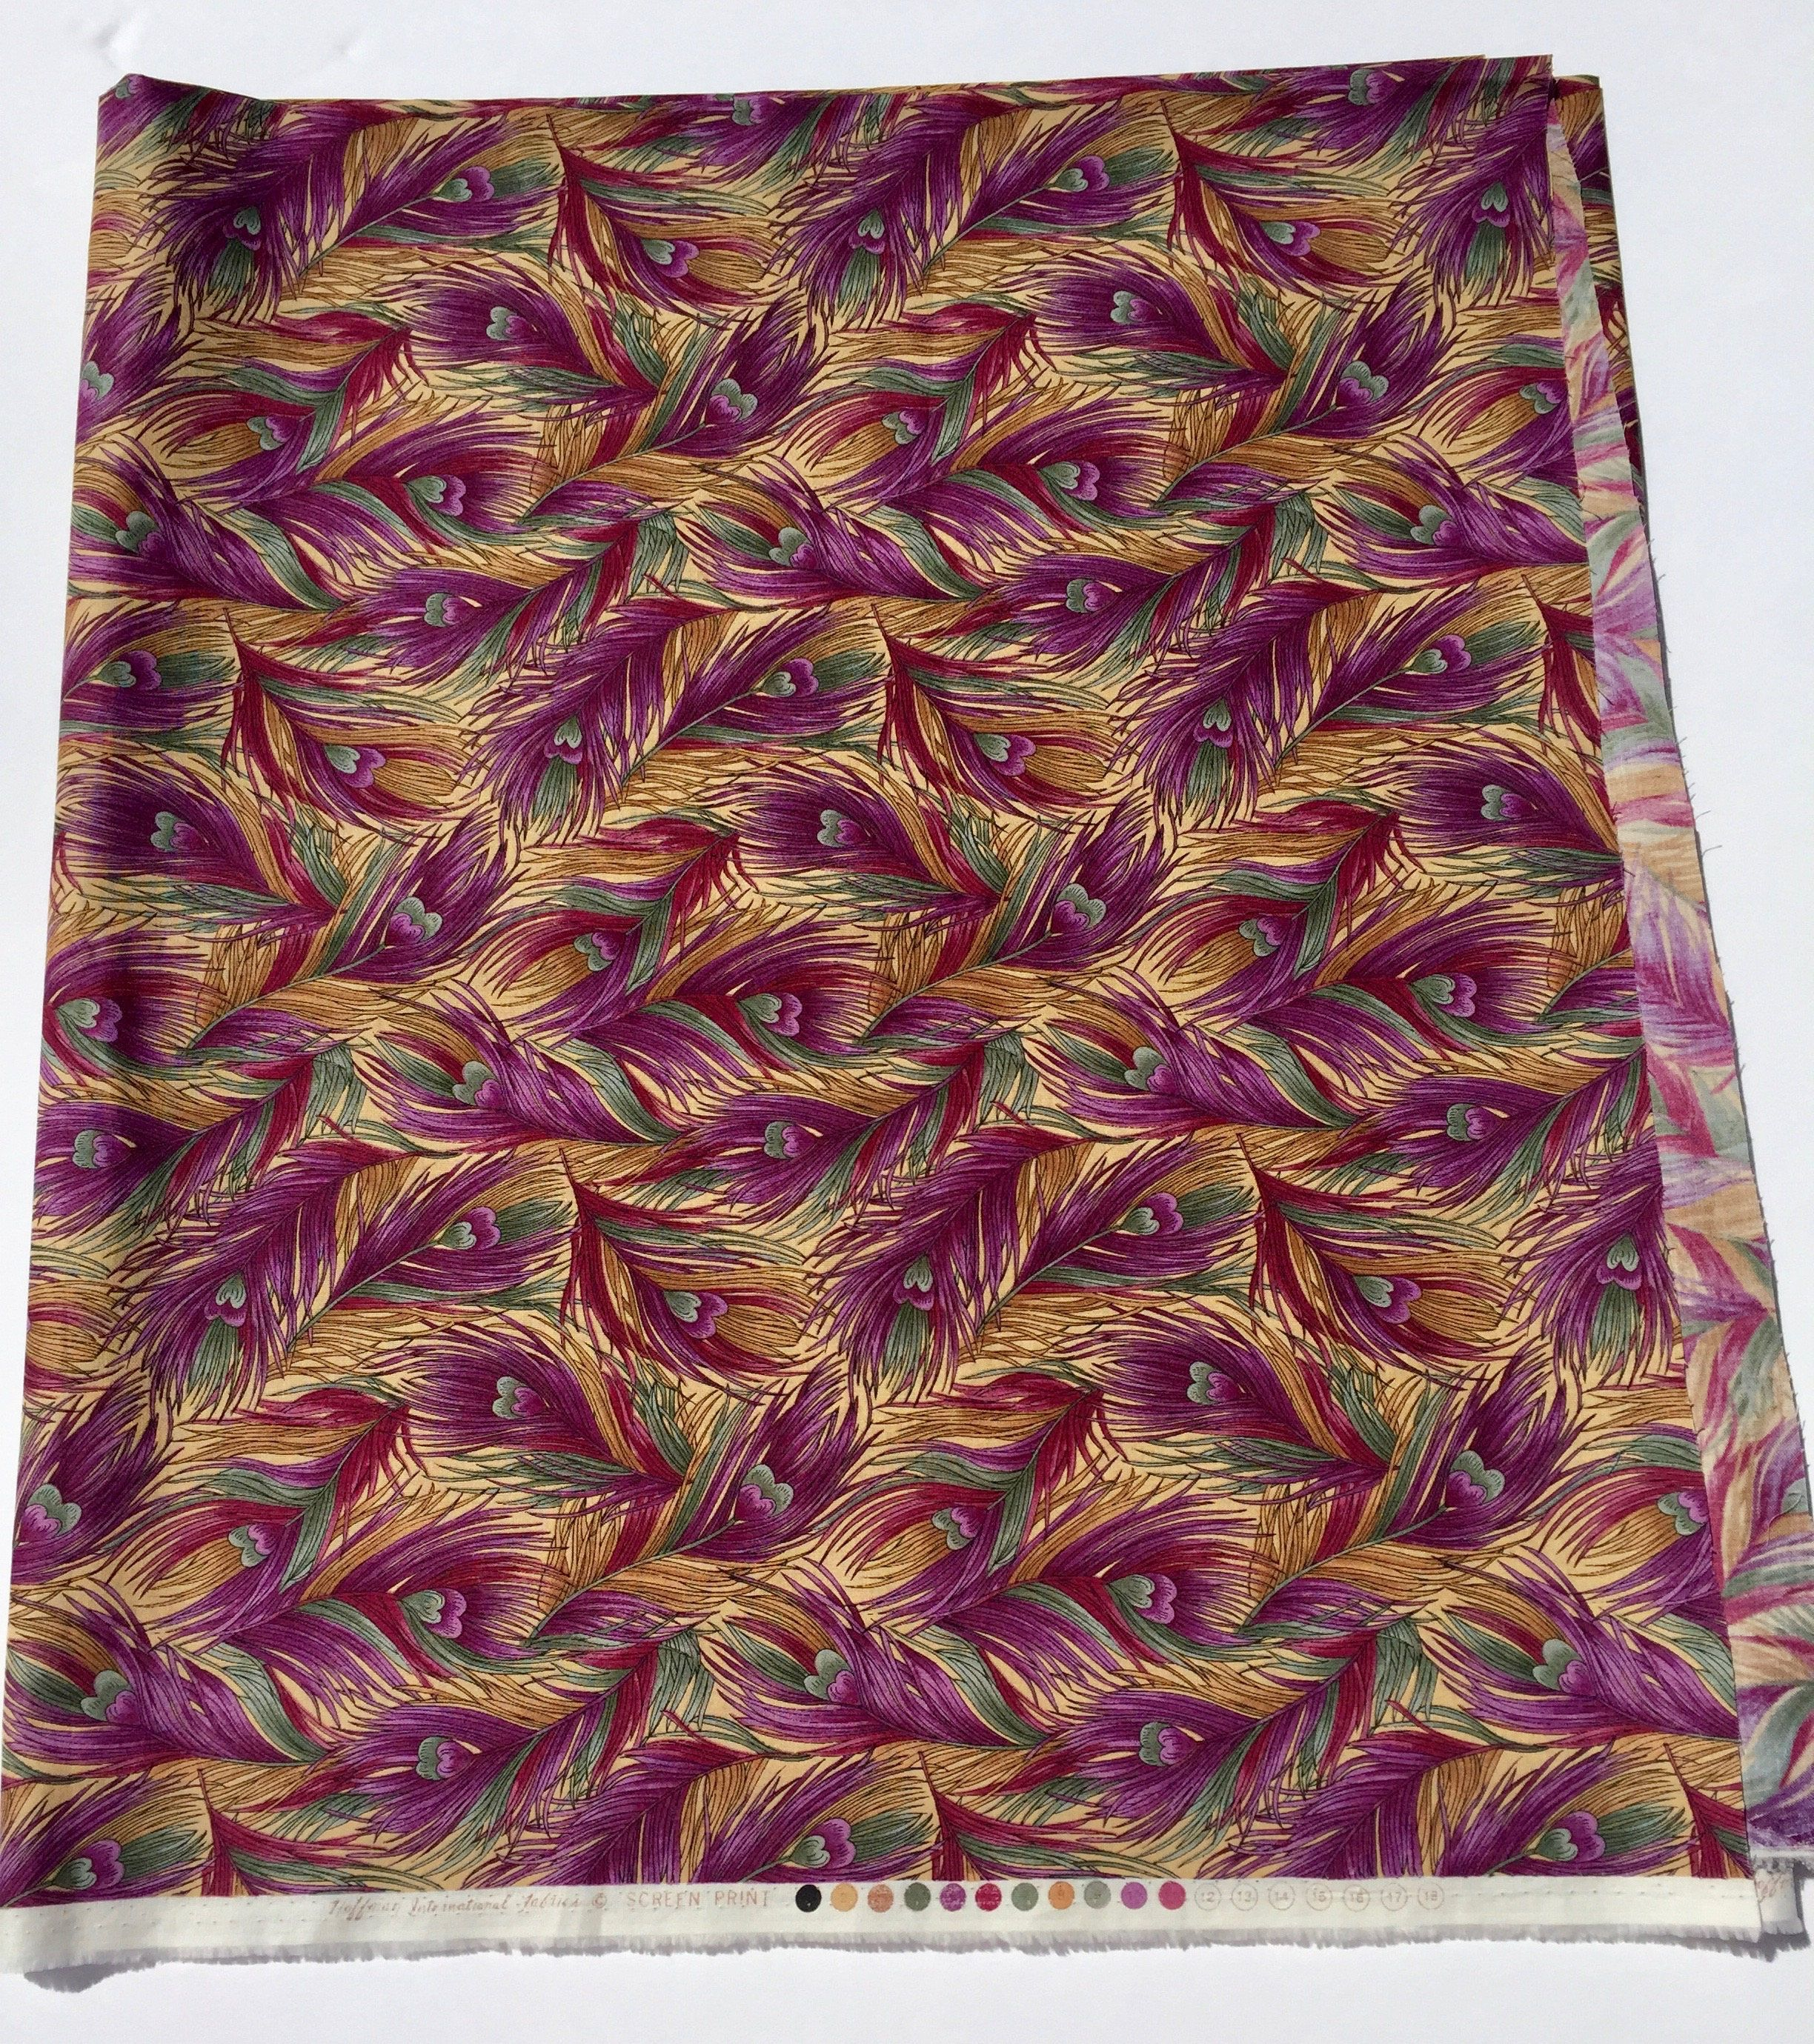 2 Yards of Hoffman International Fabric, Green, Gold and Purple ... : quilting fabric sale - Adamdwight.com